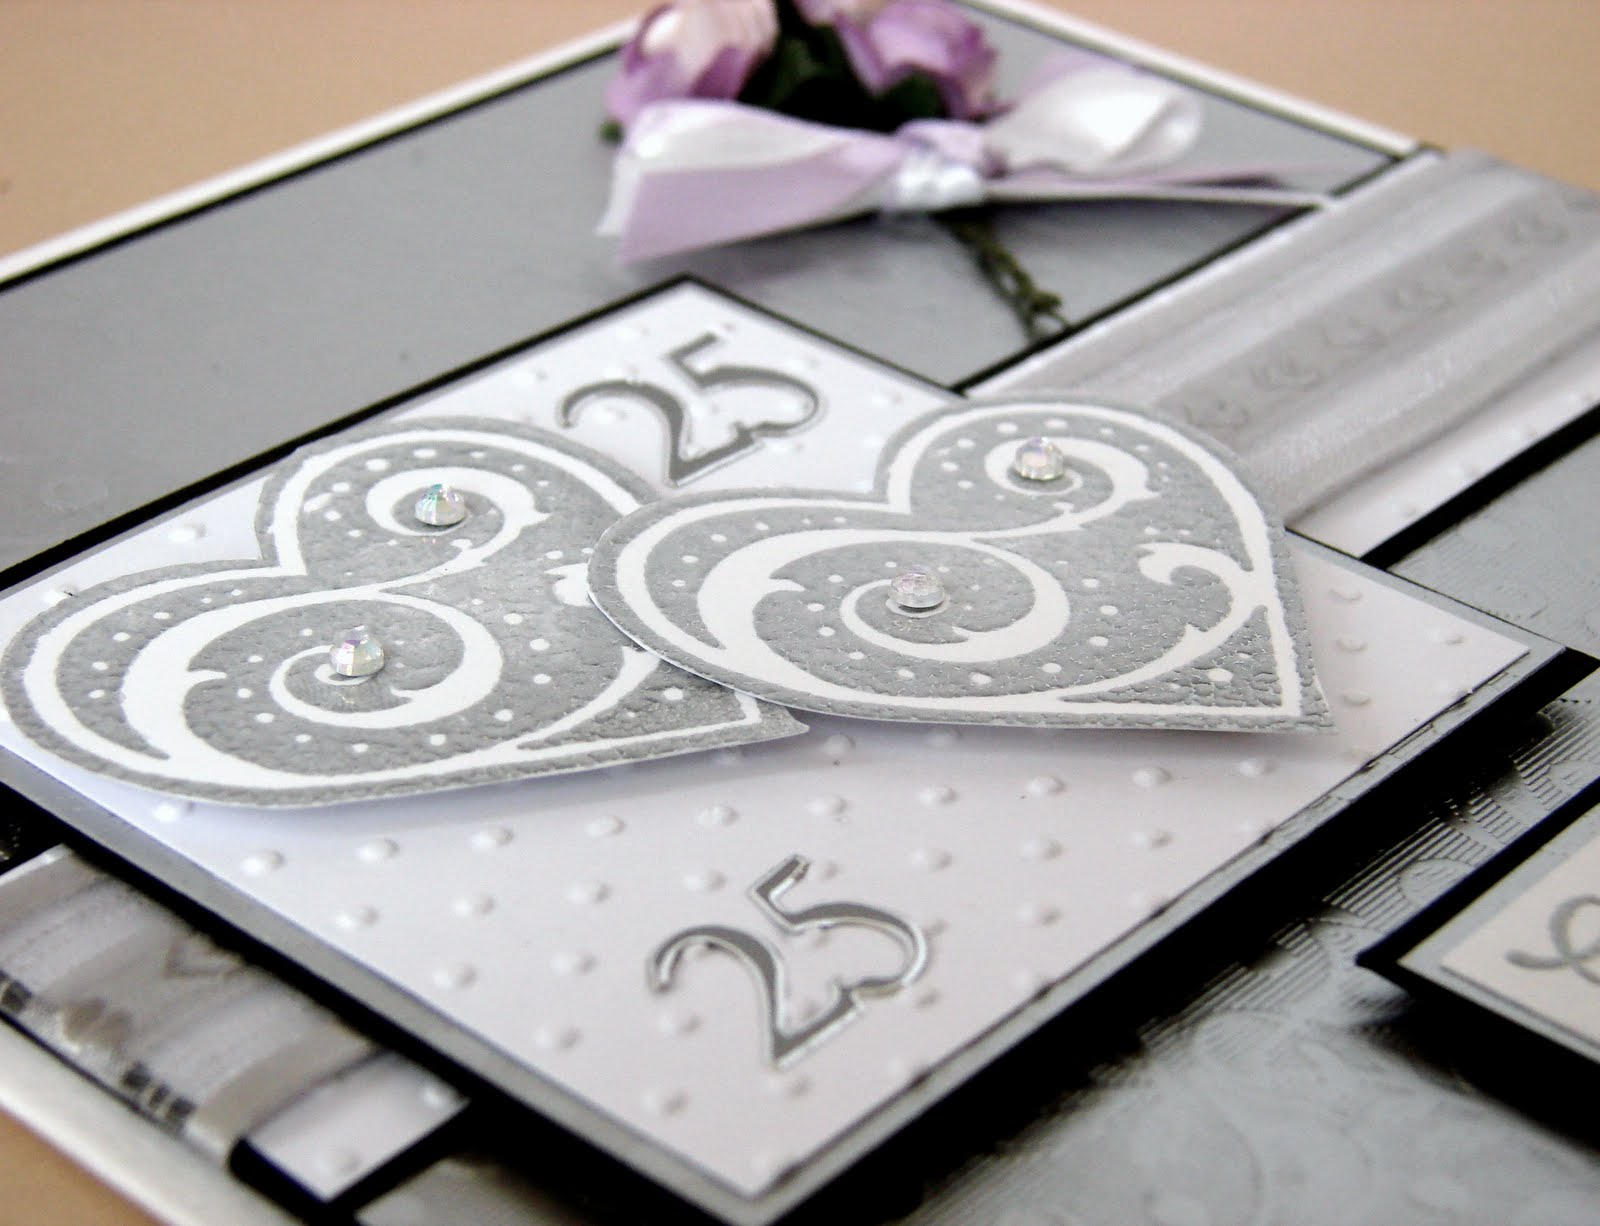 Silver Wedding Anniversary Gifts For Parents: ON THE CARDS: Silver Wedding Anniversary Card